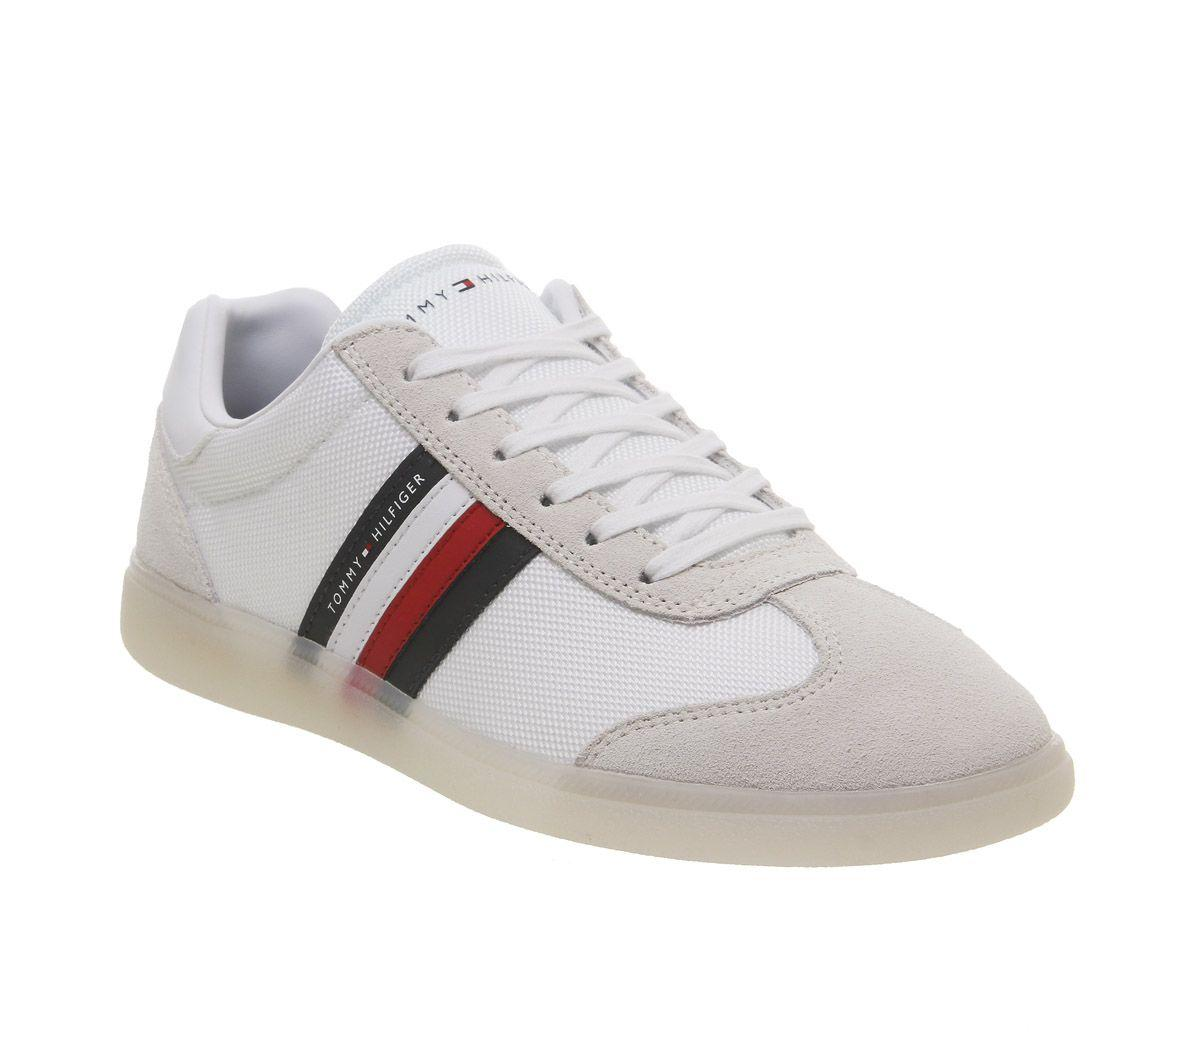 843c0cea2 Tommy Hilfiger Danny Trainers in White for Men - Lyst